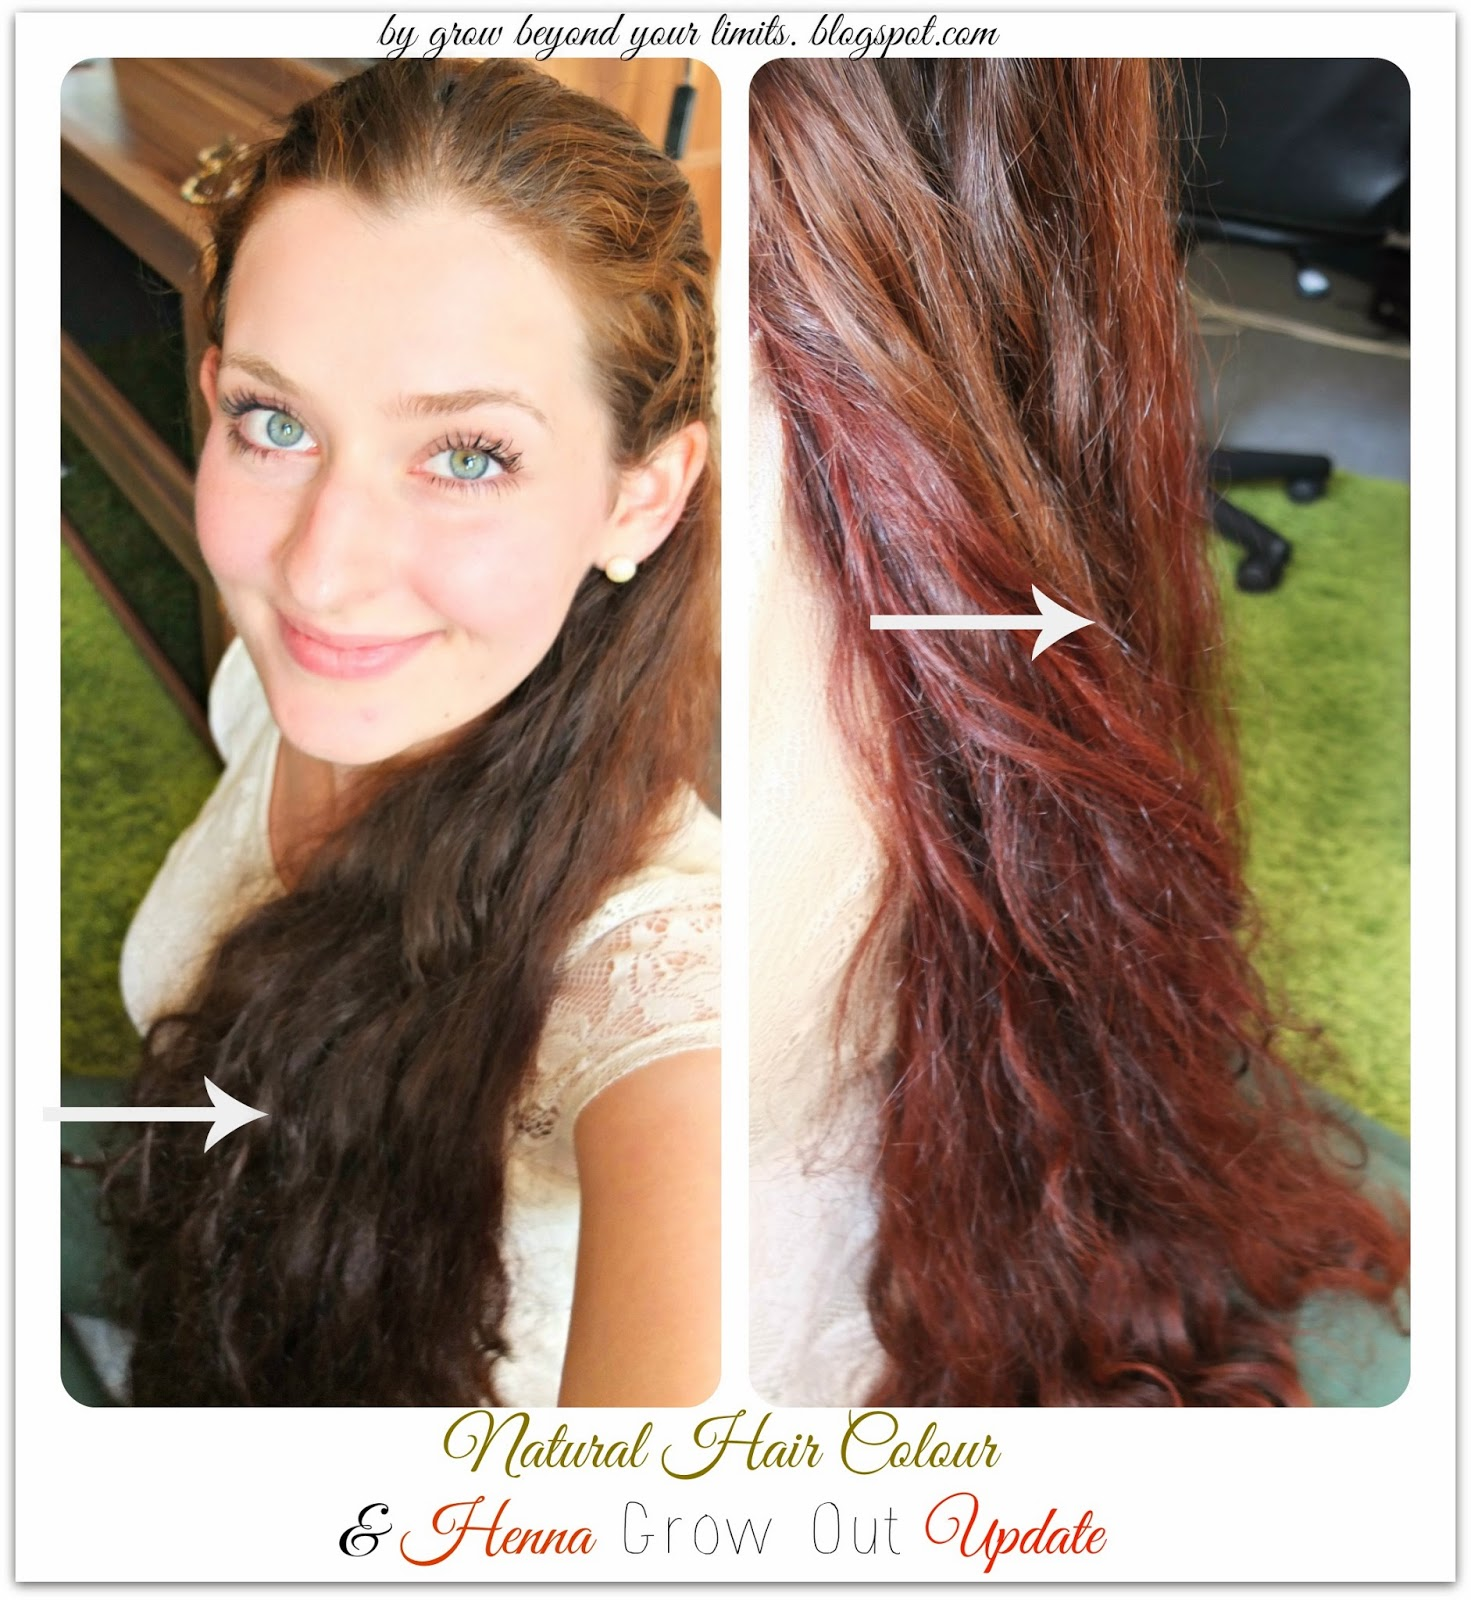 Natural Hair Colour Update Growing Out Henna